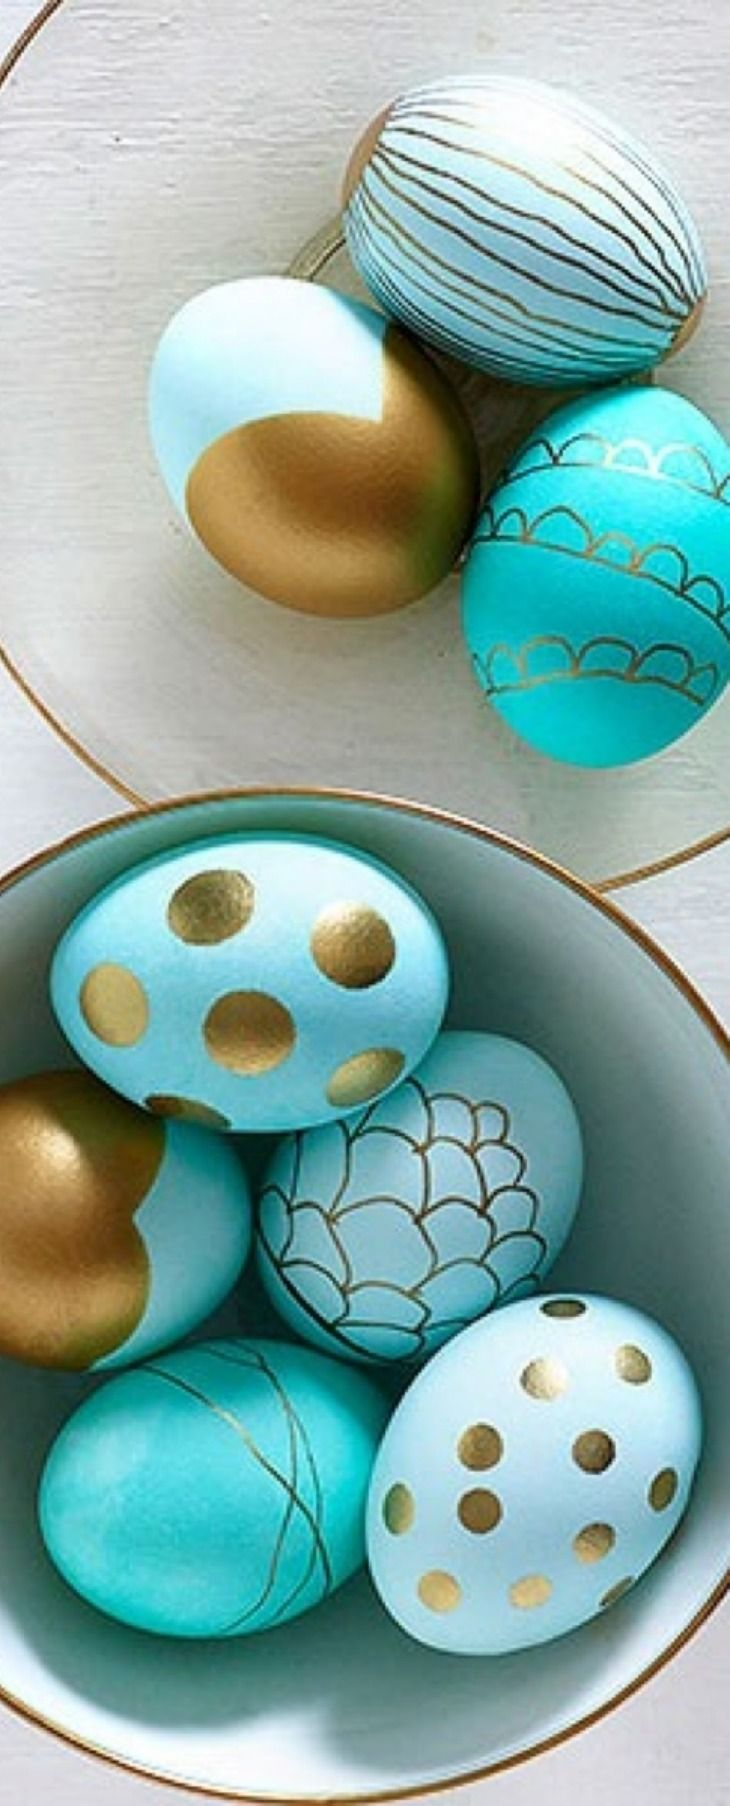 Where To Order Homemade Easter Eggs 101